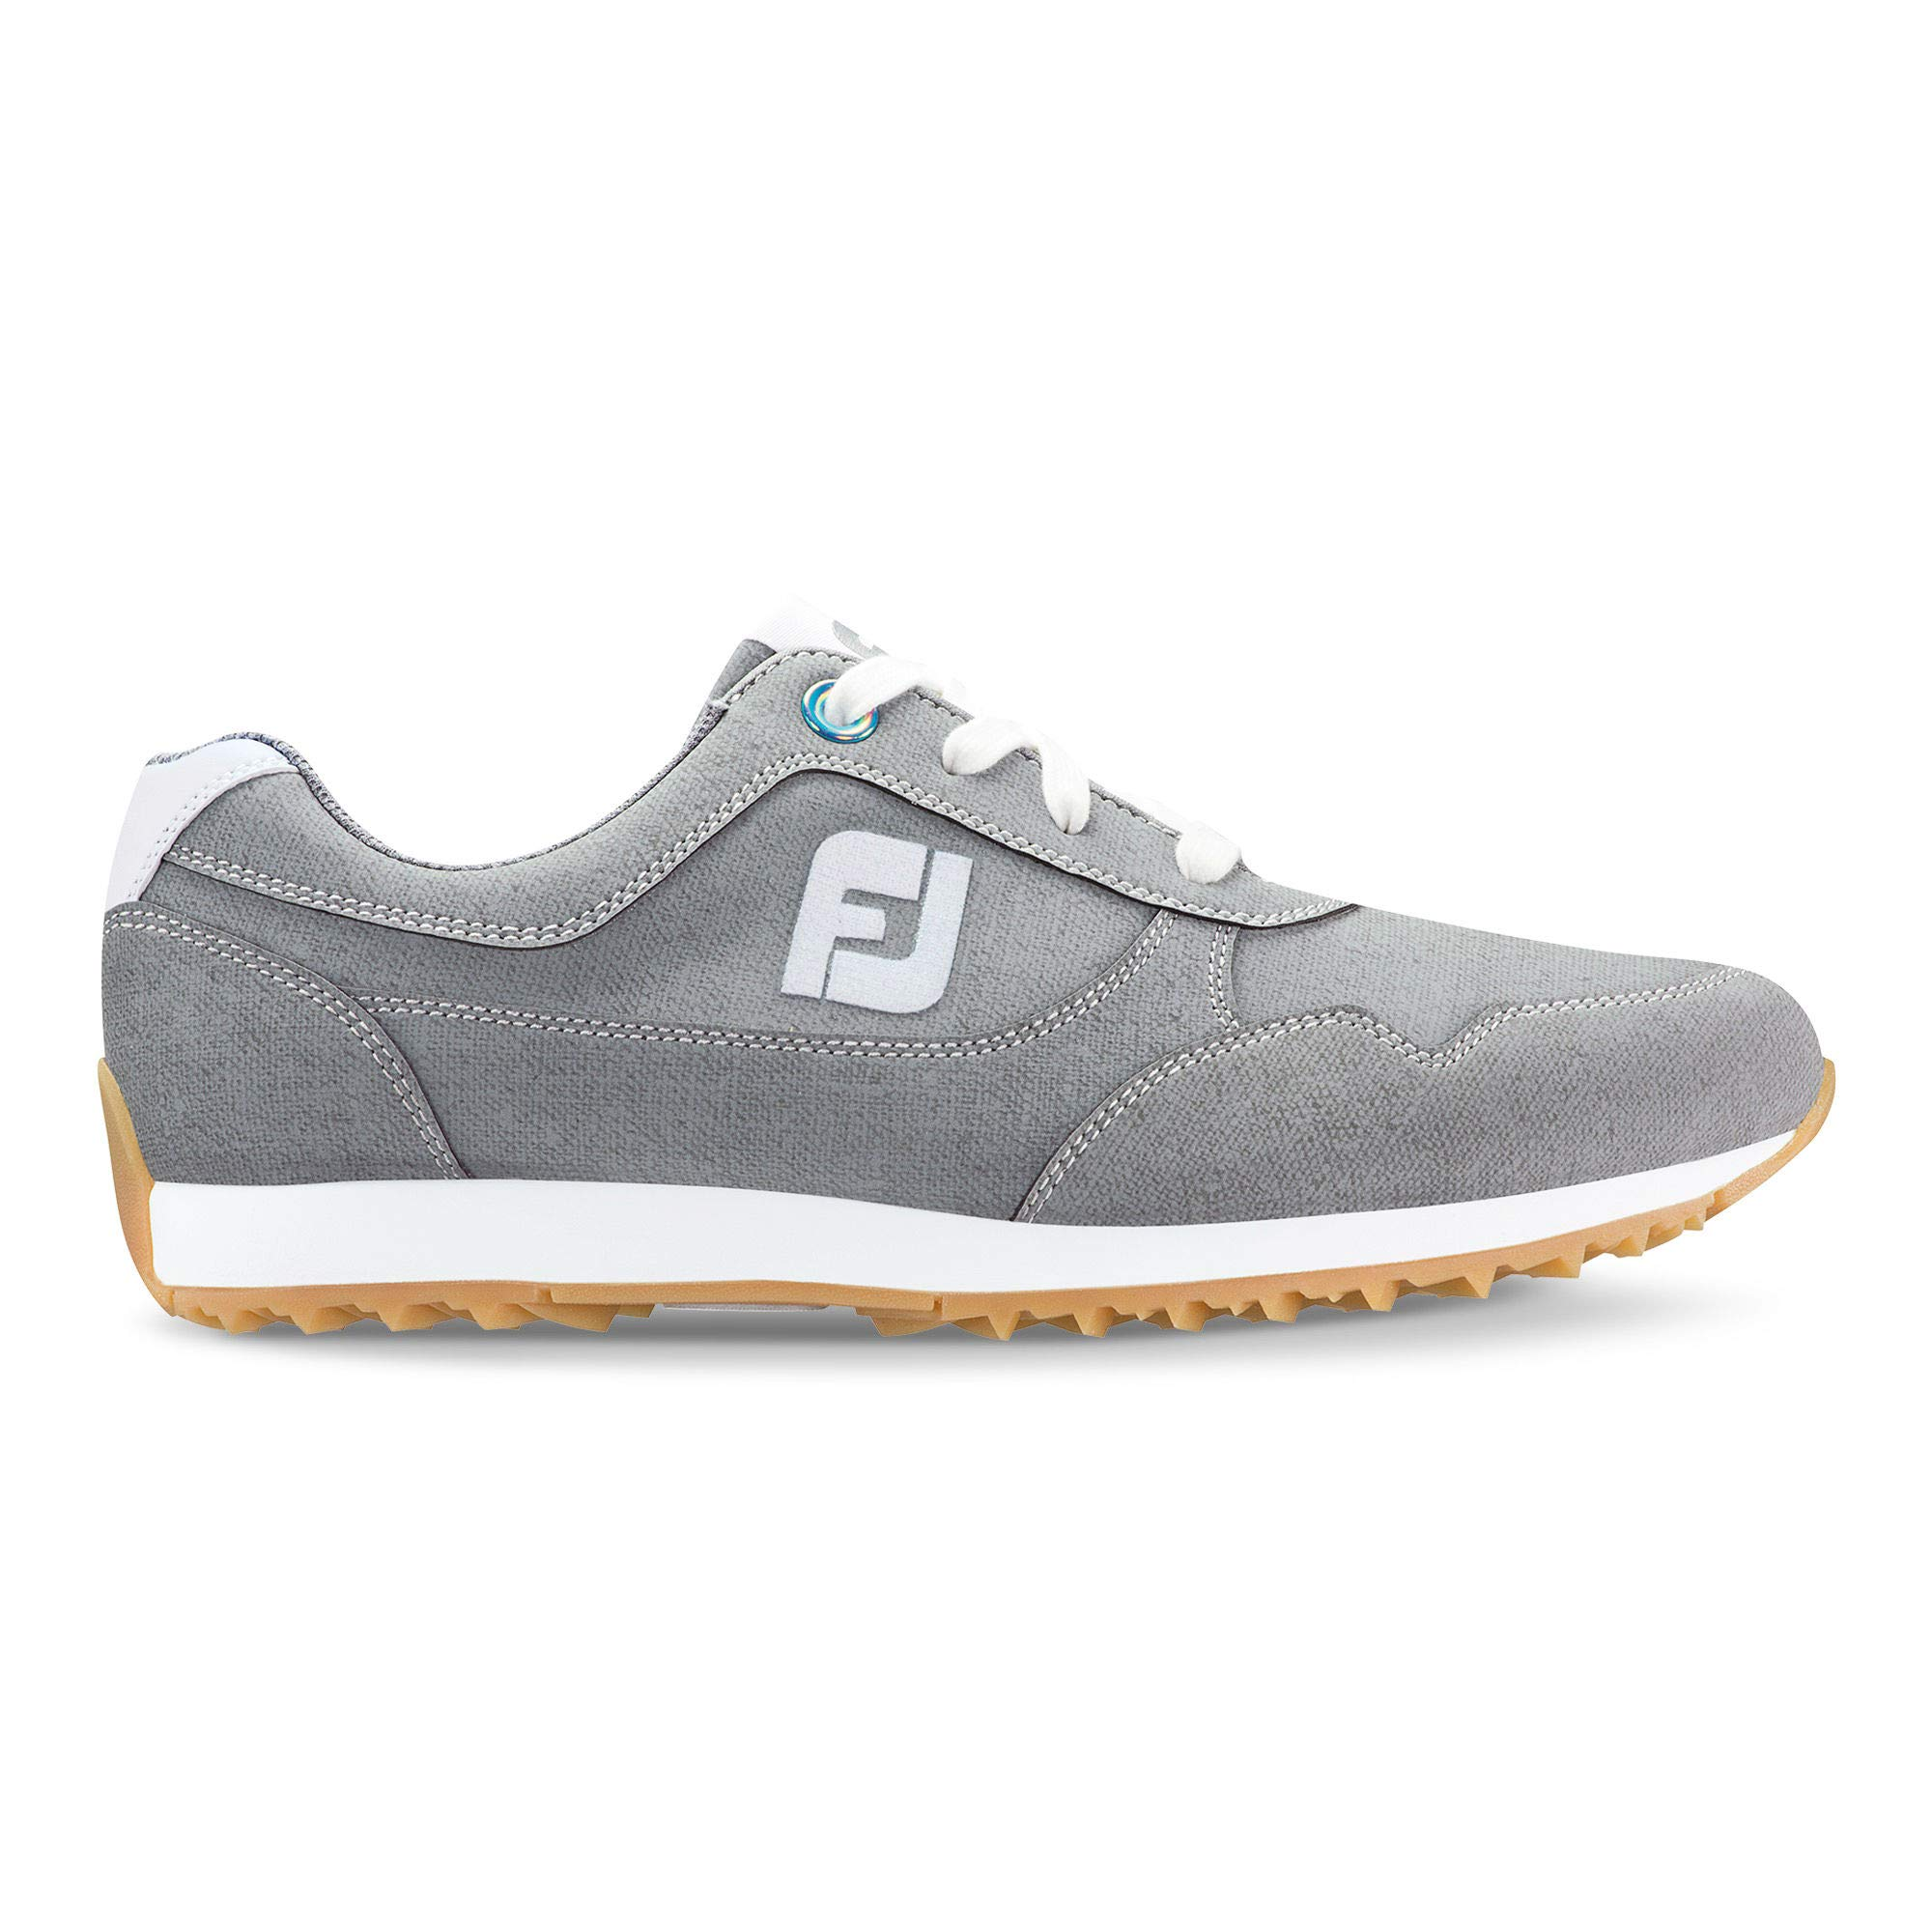 FootJoy Women's Sport Retro Golf Shoes Grey 7 M US by FootJoy